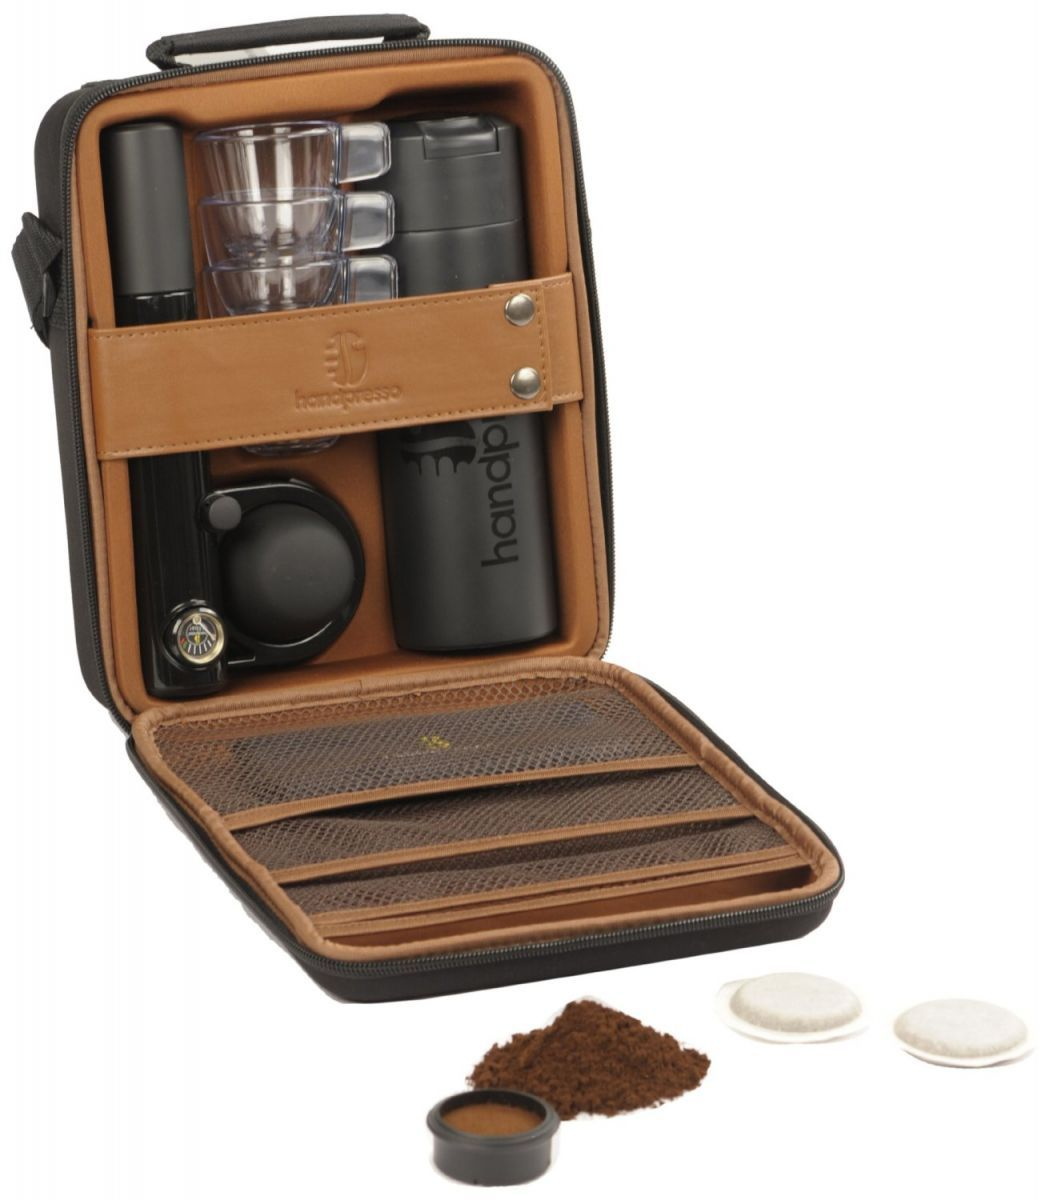 4 Cup Coffee Maker Portable : Best Portable Coffee Makers - The Ultimate Buying Guide coffee Pinterest Portable coffee ...